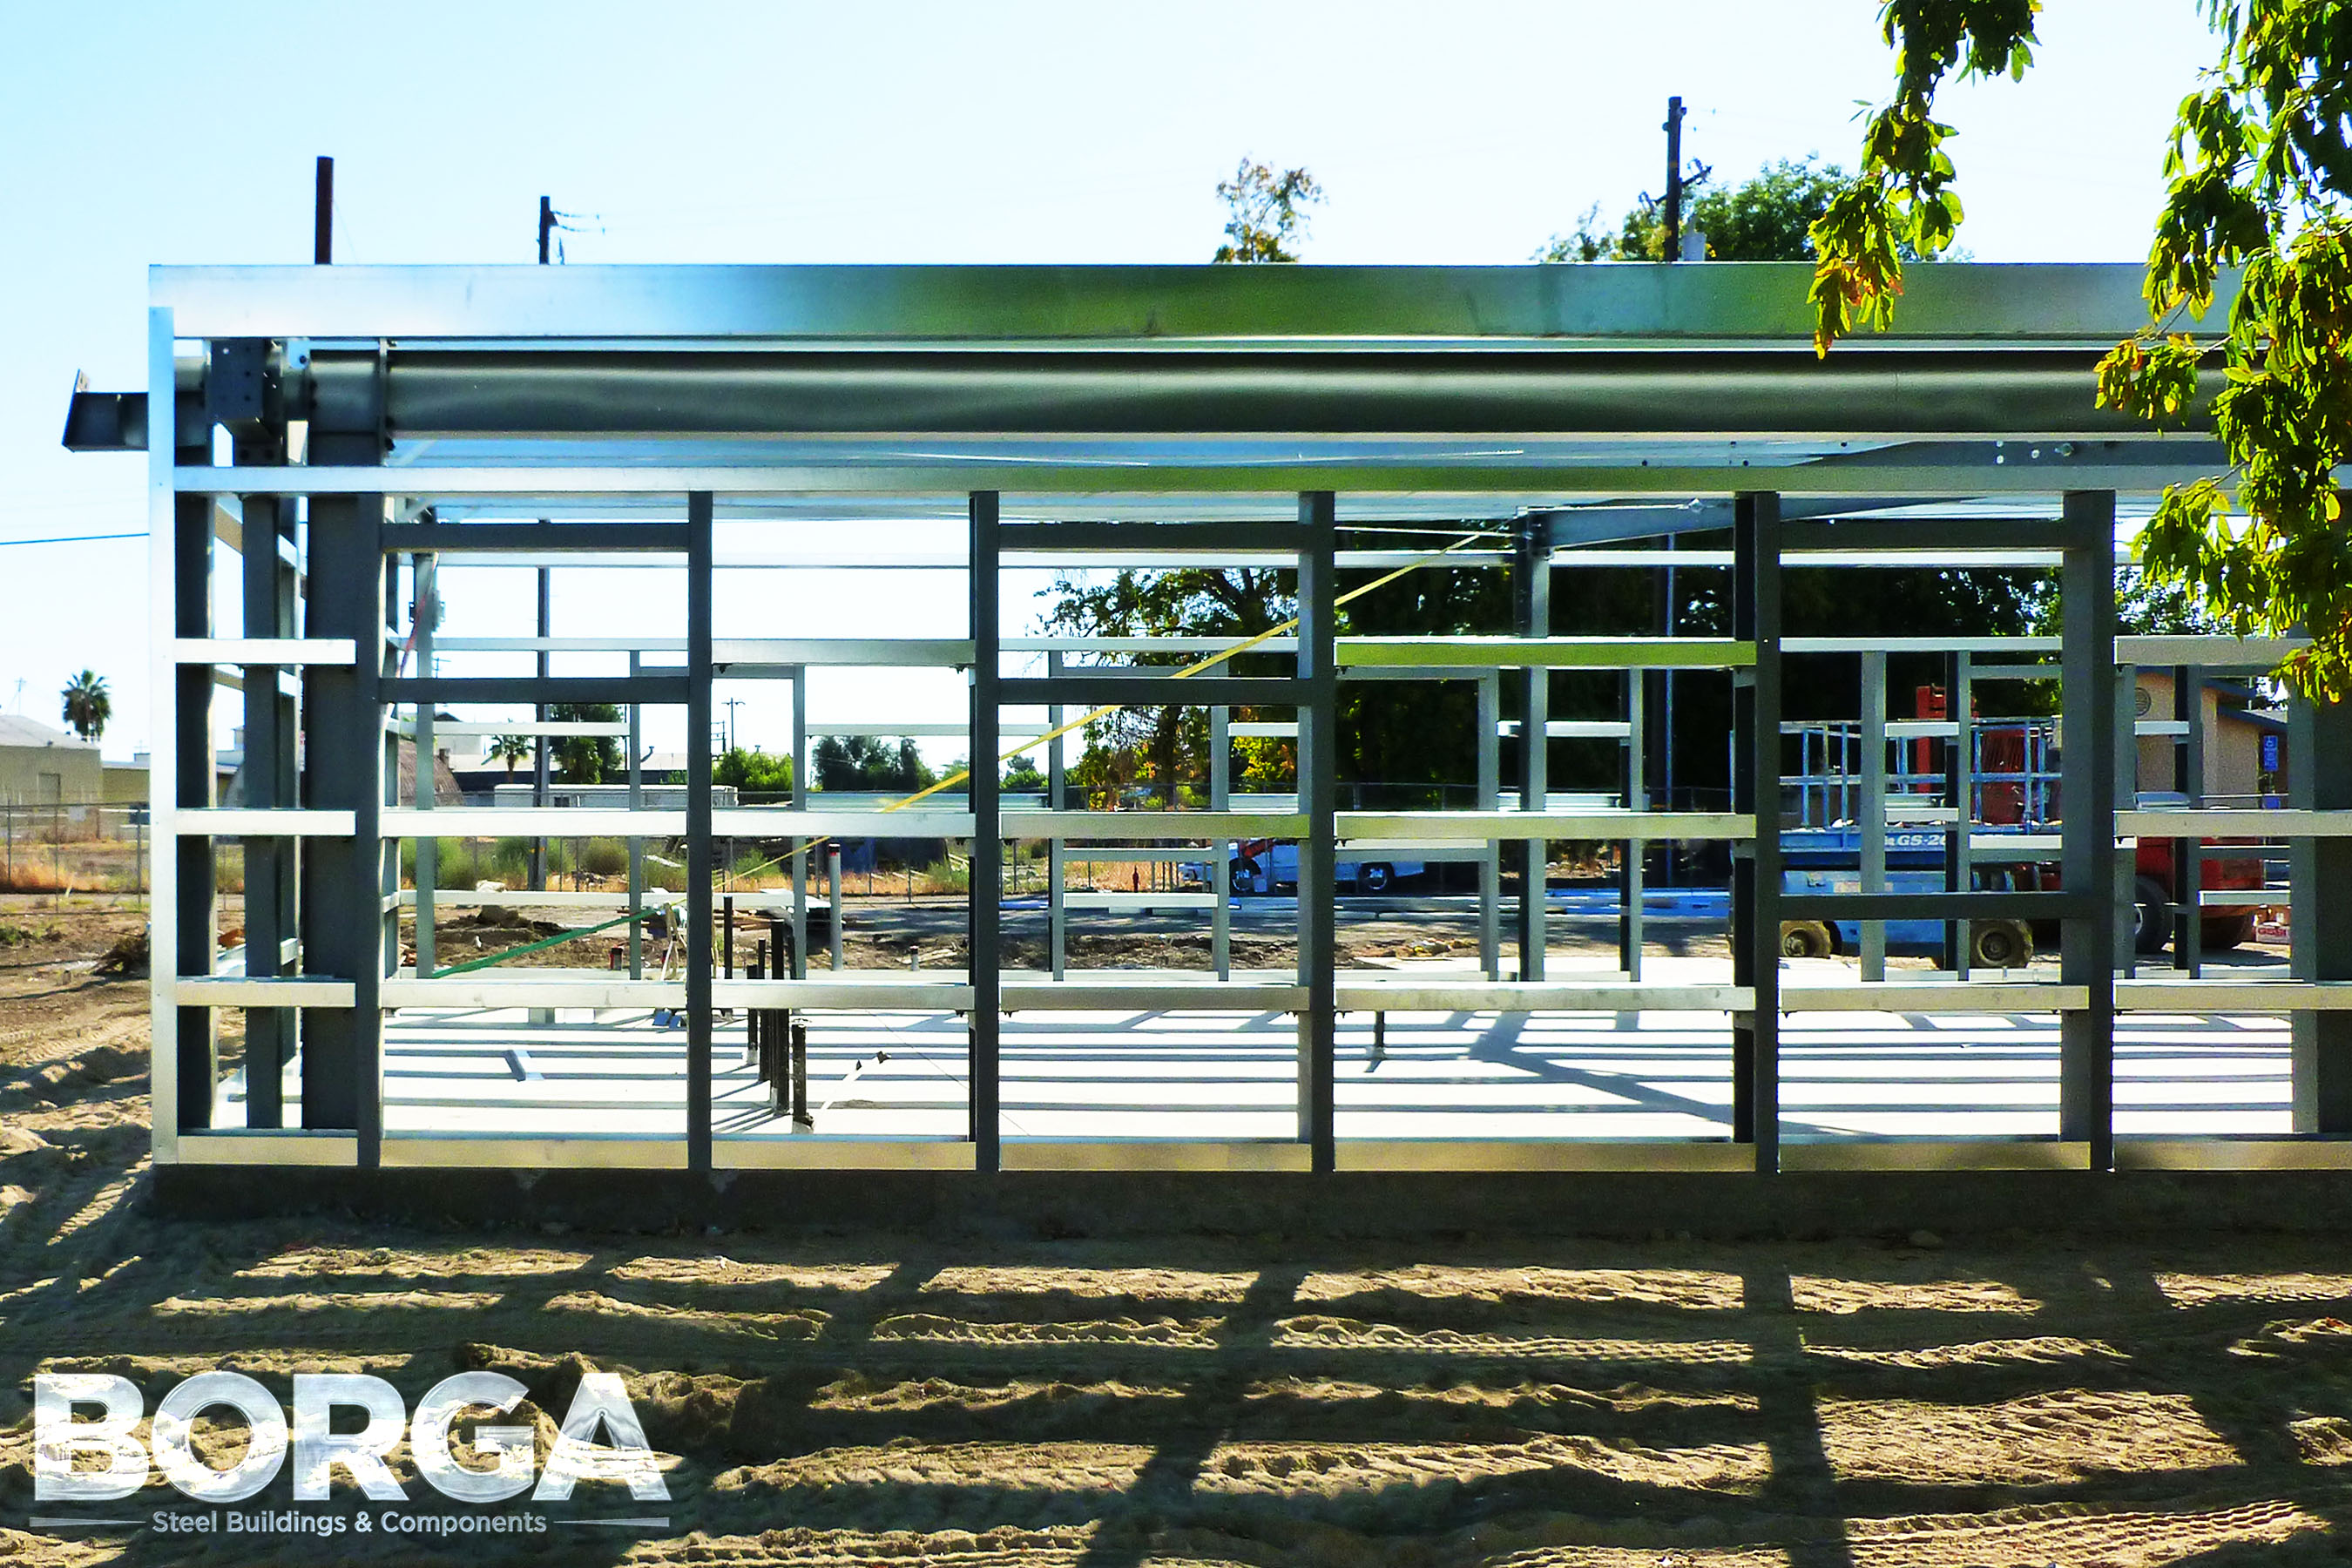 Borga Steel Buildings Components Metal Framing Huron Boys & Girls Club 4